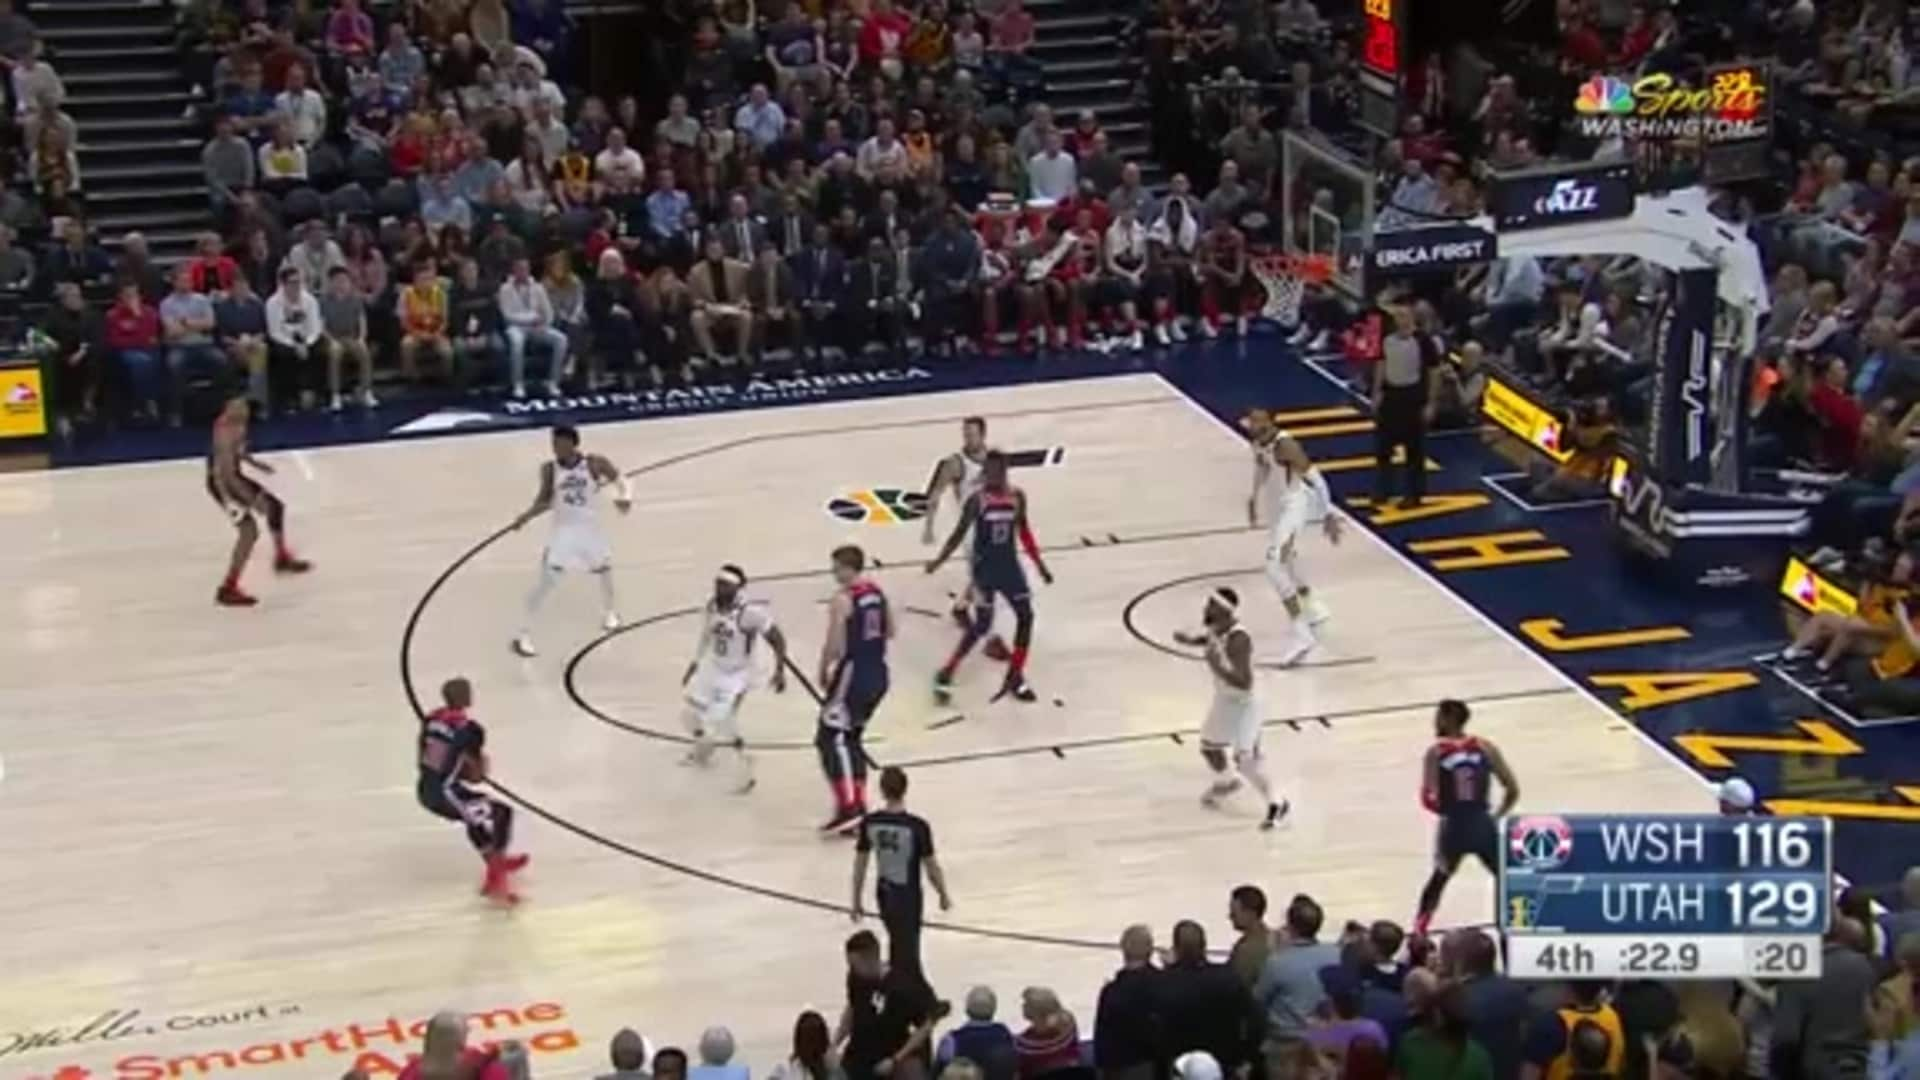 Highlights: Wizards vs. Jazz - 02/28/20